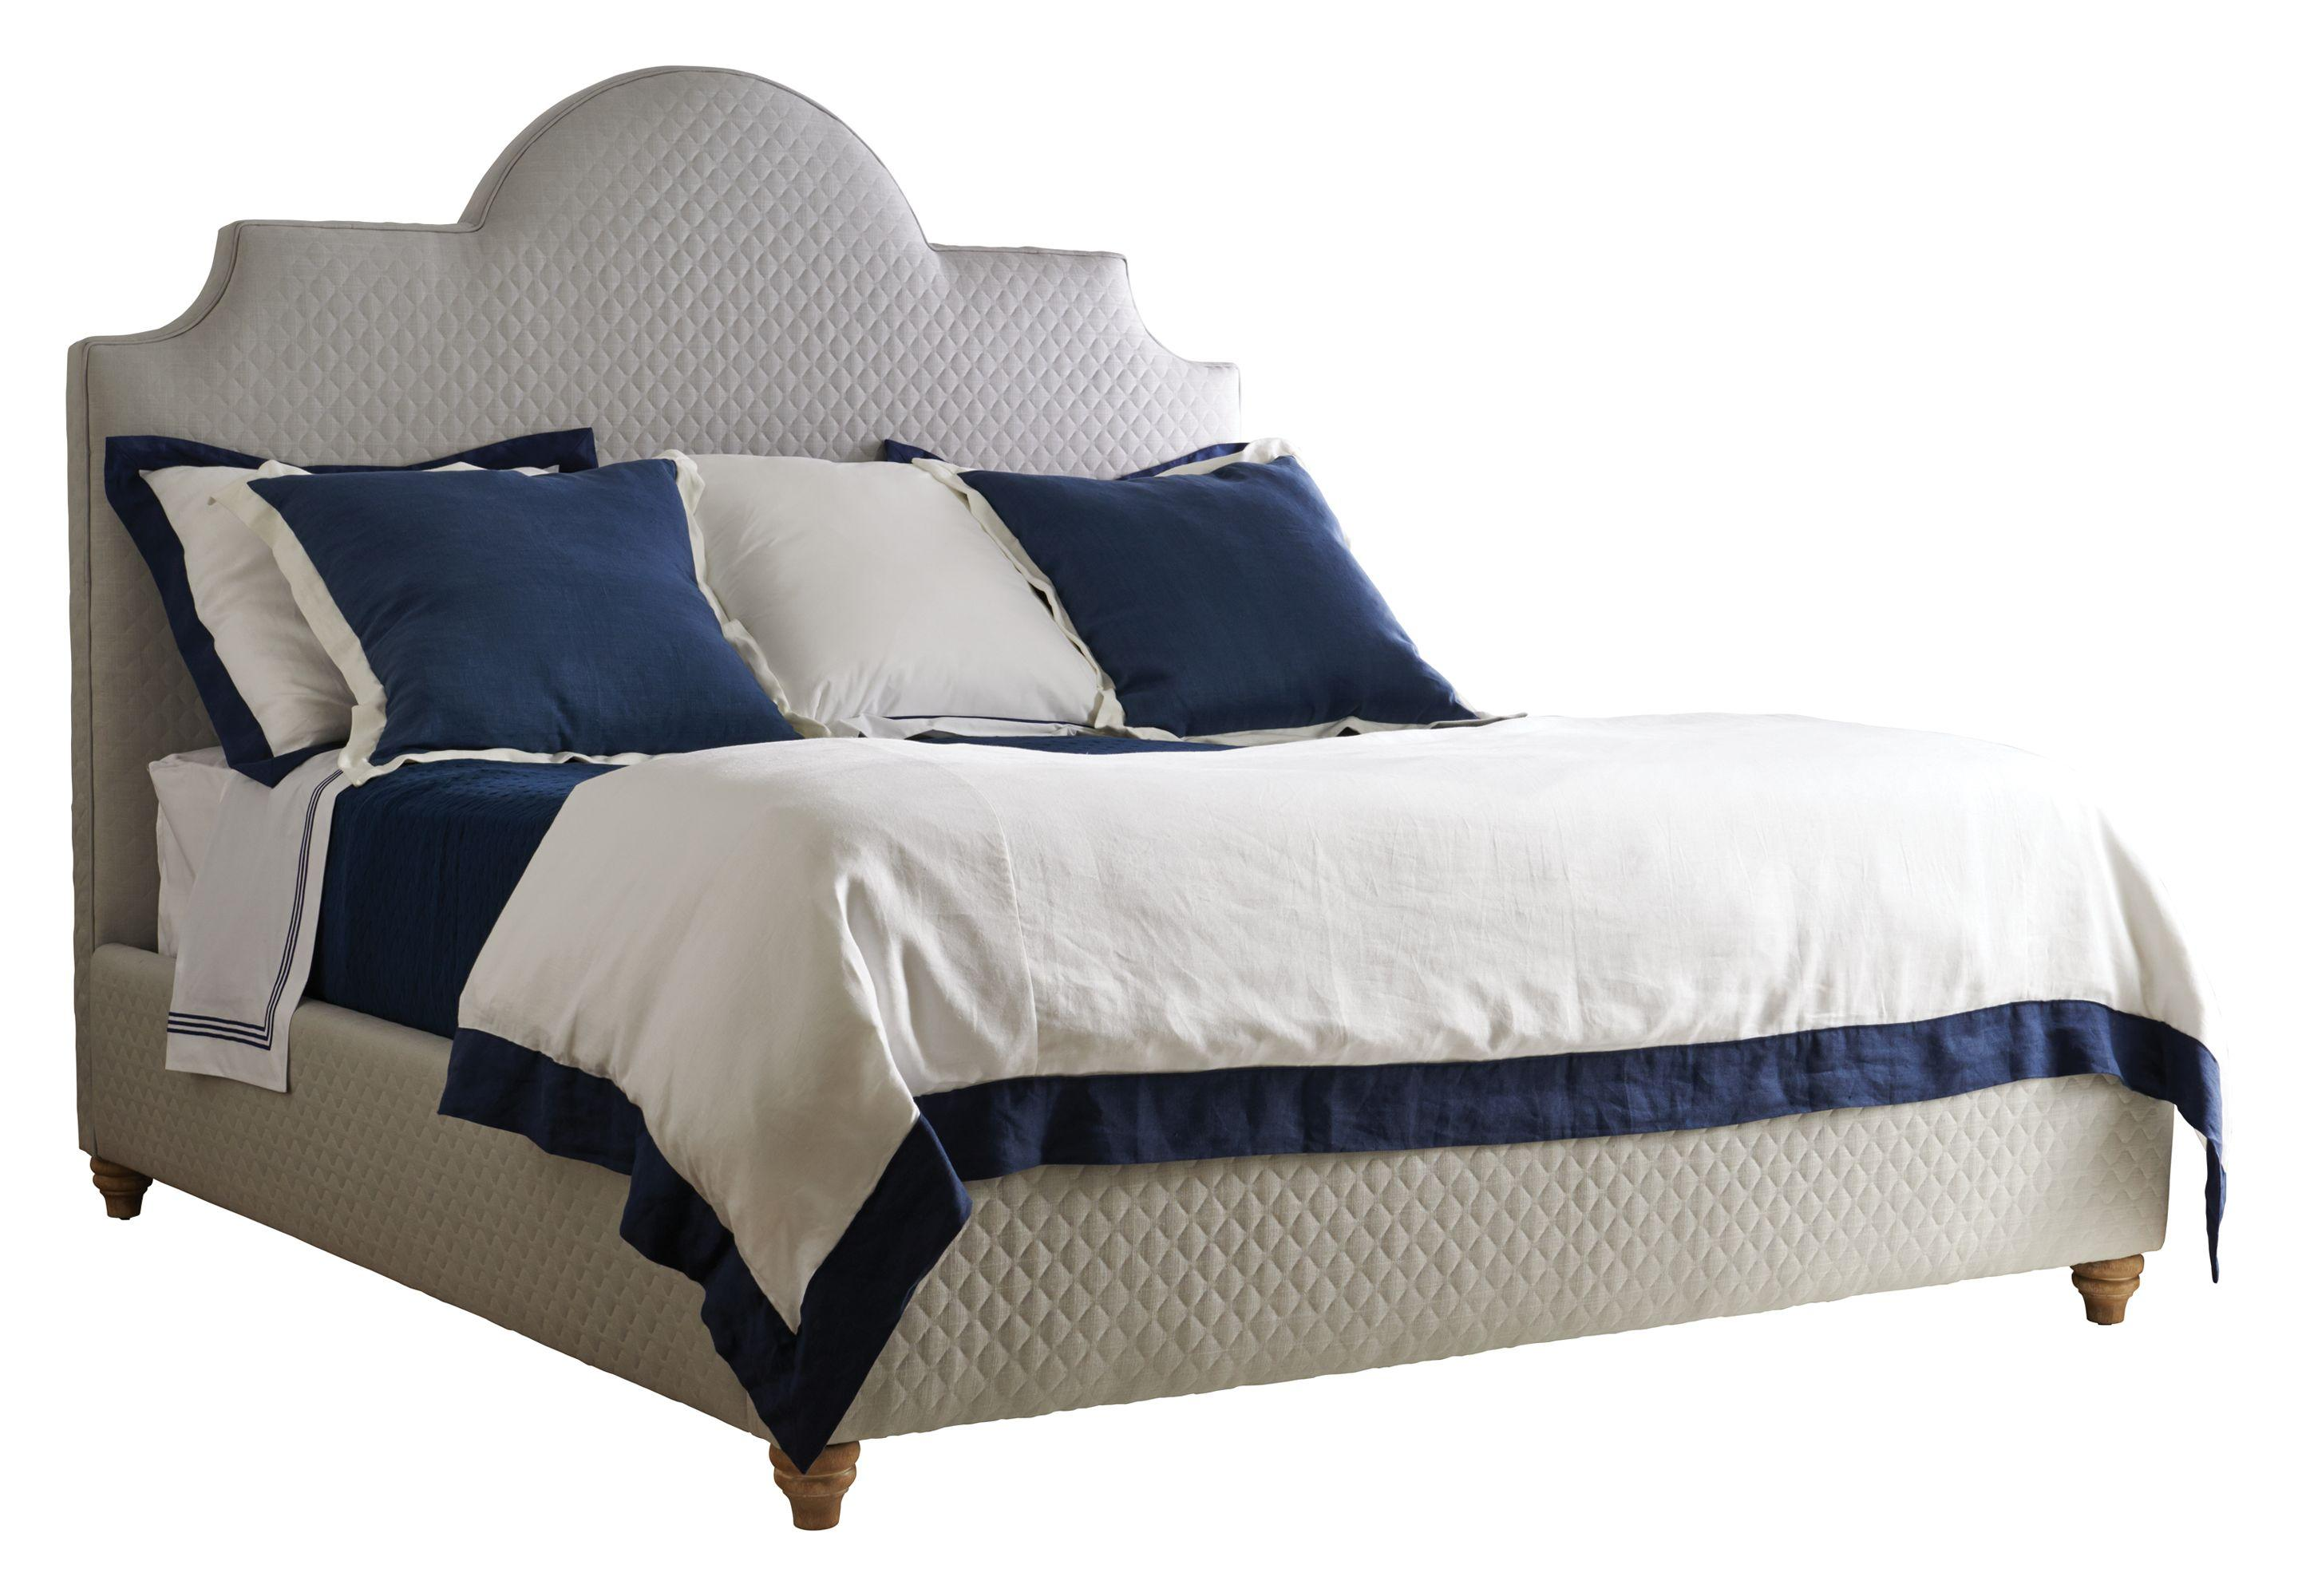 Stanley Furniture Coastal Living Retreat Queen Breach Inlet Bed - Item Number: 411-C3-52